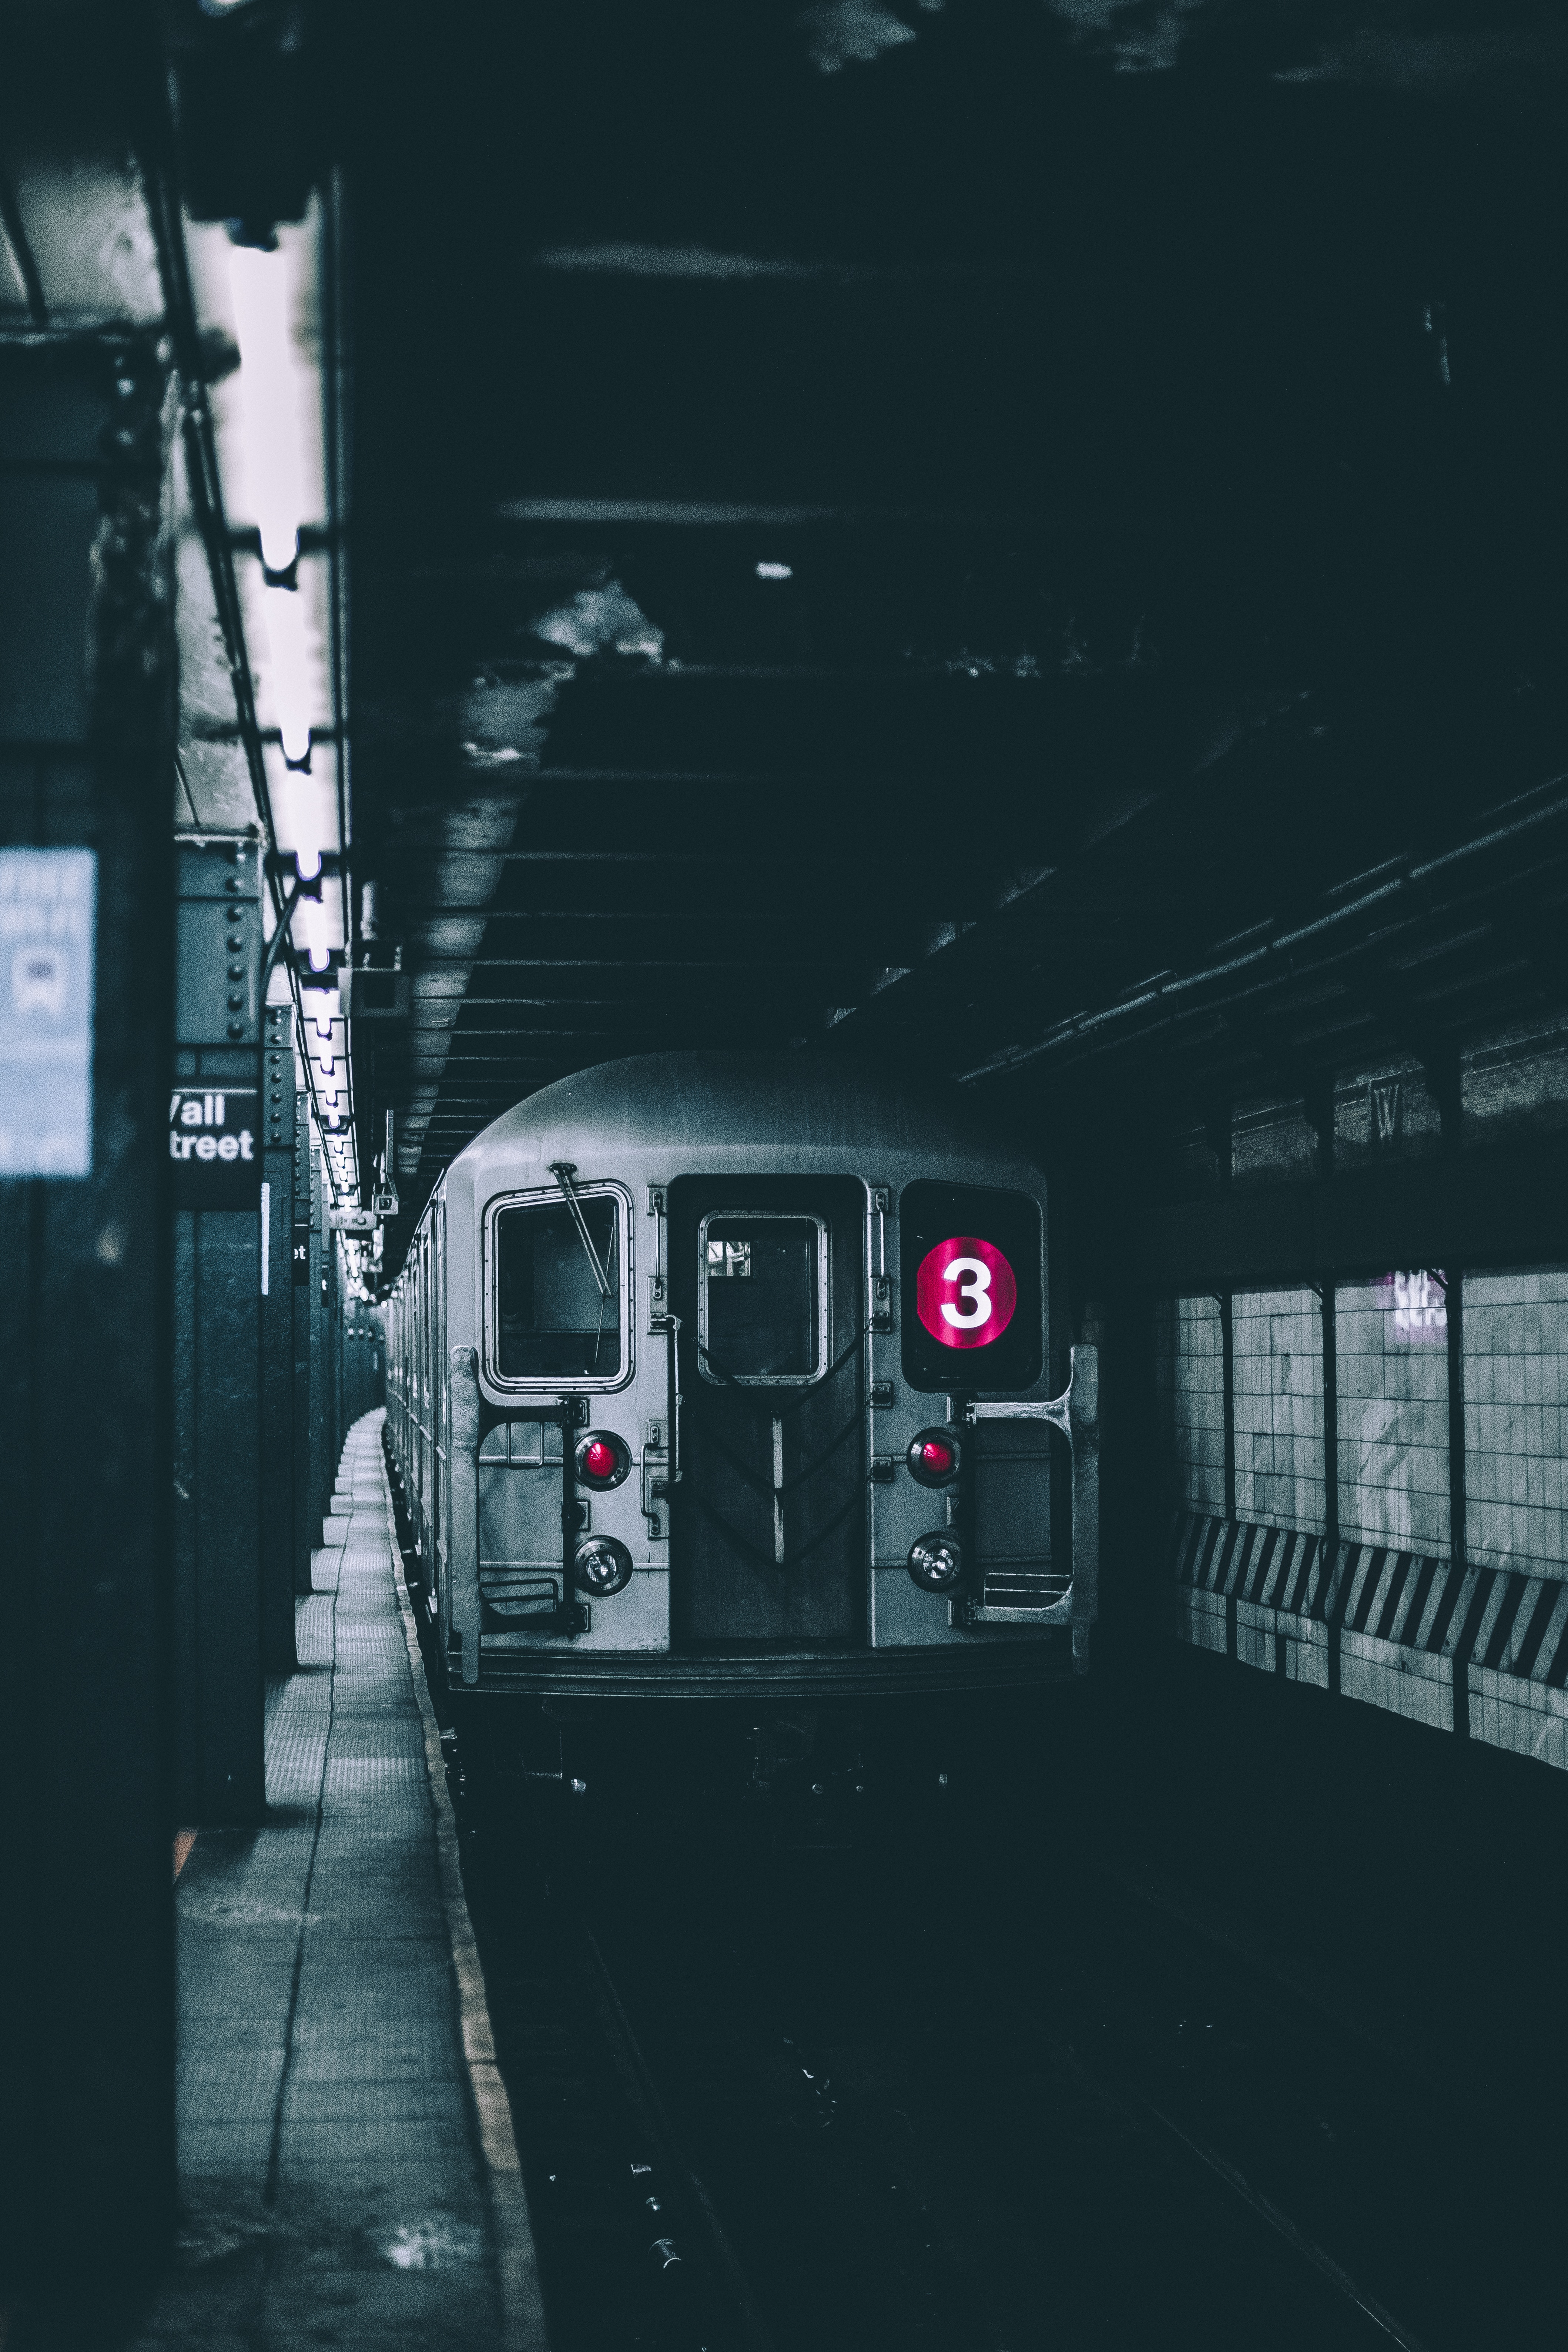 89355 download wallpaper Miscellanea, Miscellaneous, Railway Carriage, Car, Metro, Subway, Underground screensavers and pictures for free